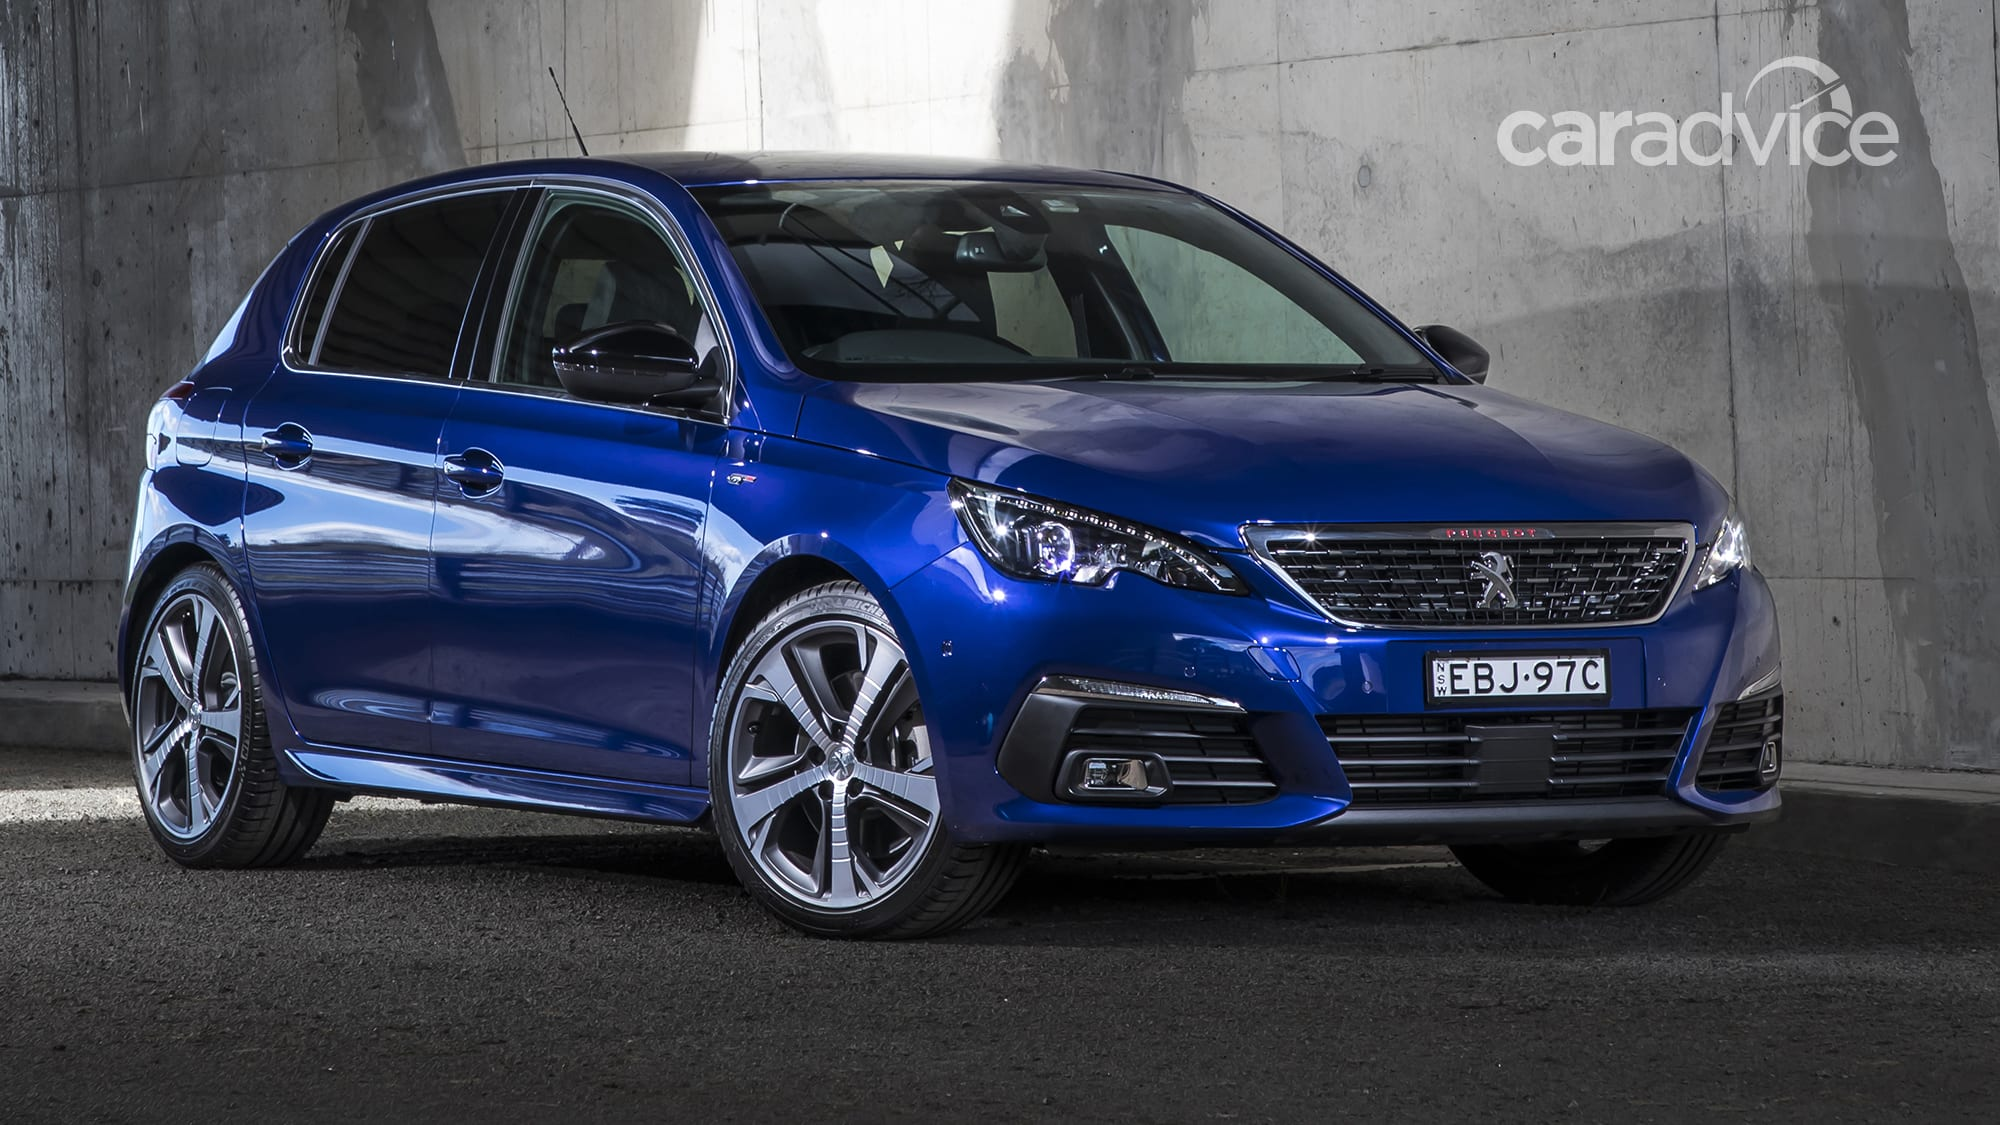 2019 Peugeot 308 GT pricing and specs | CarAdvice